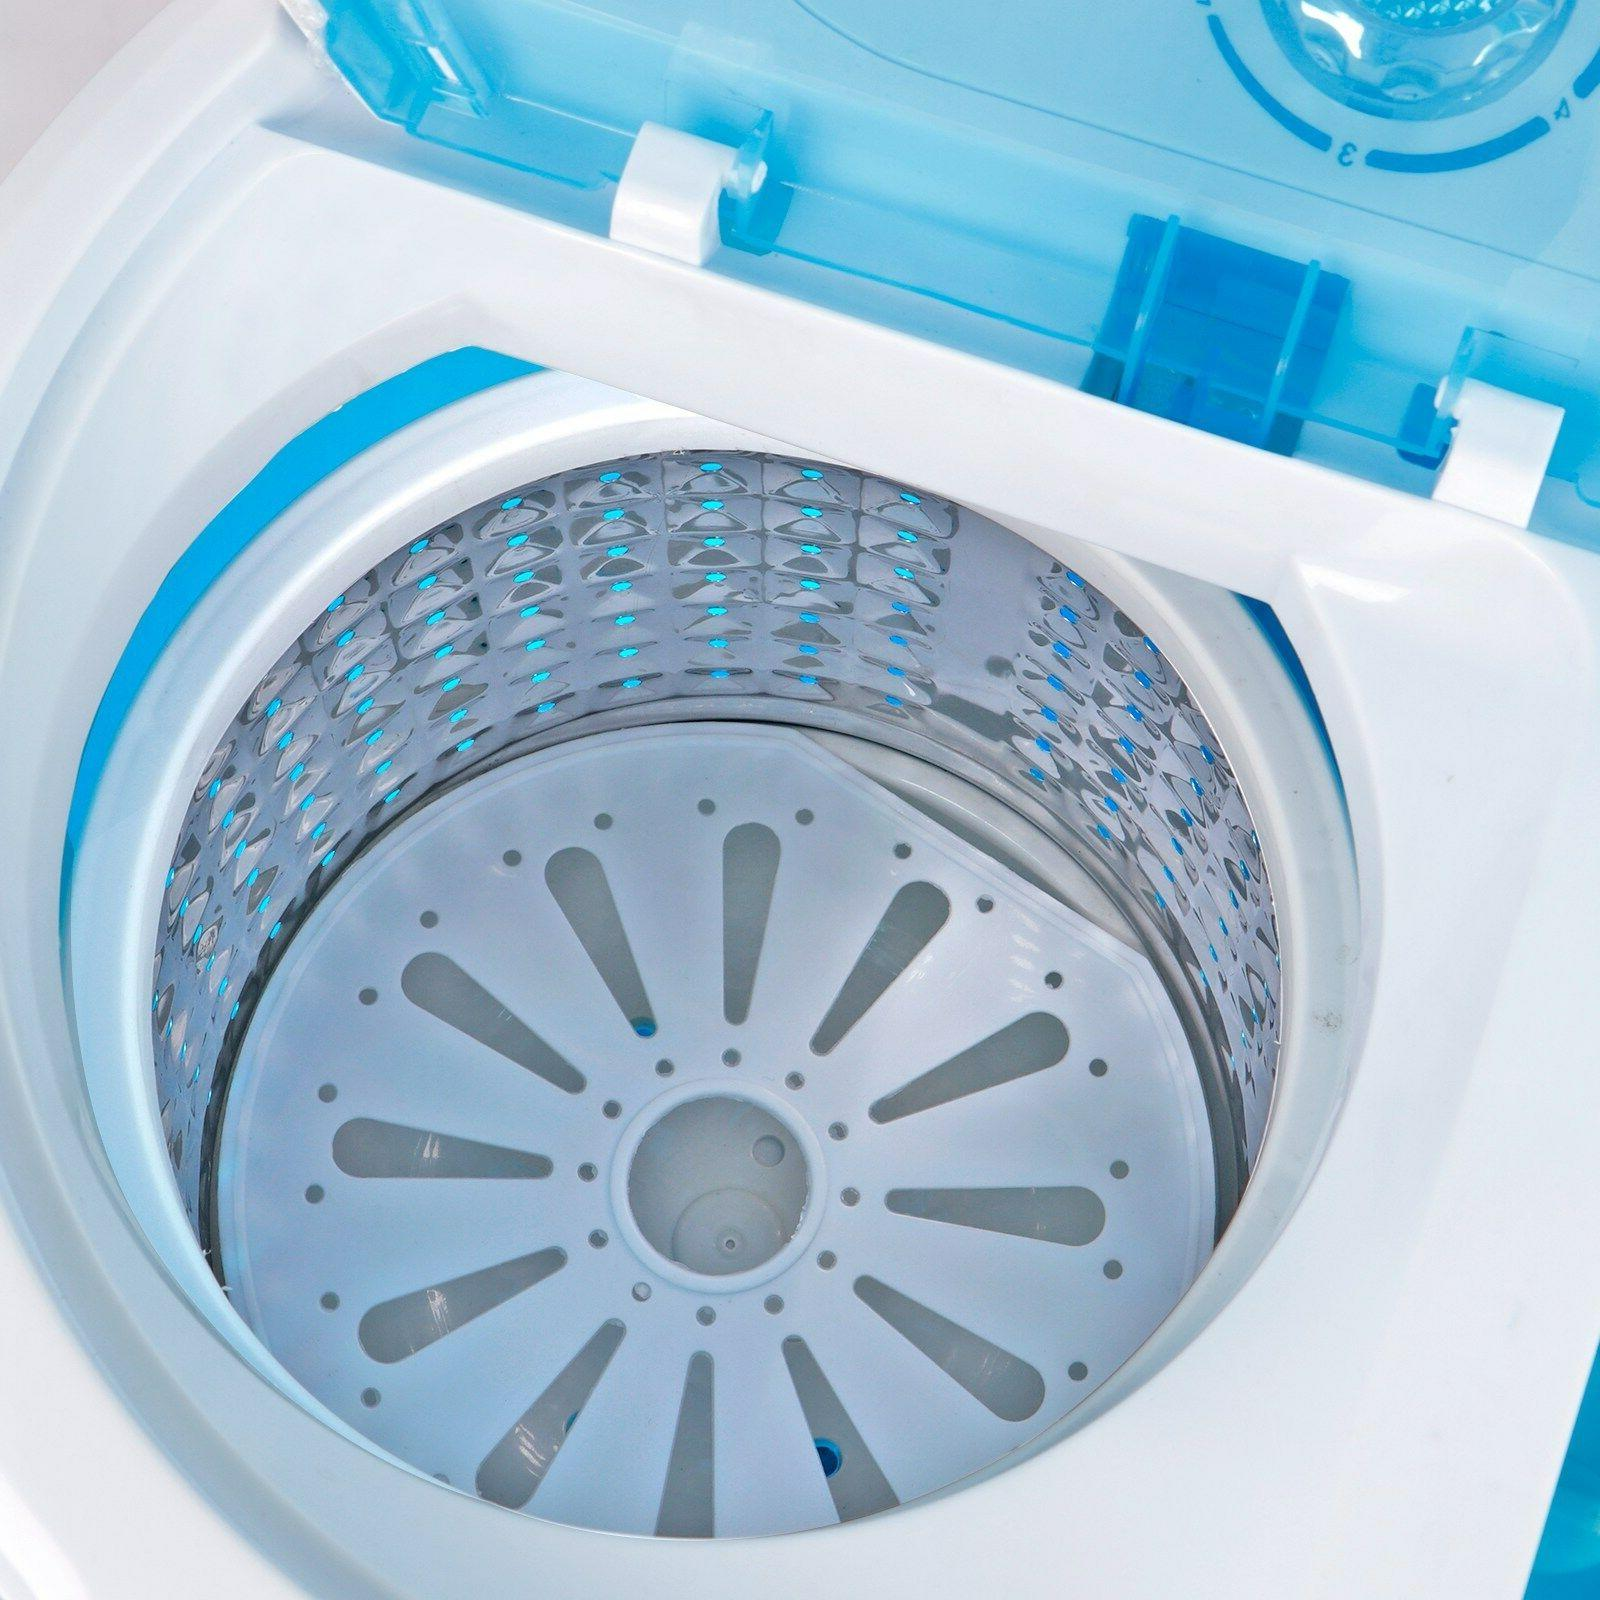 10lbs Compact Washing Machine Spin-Dry Laundry